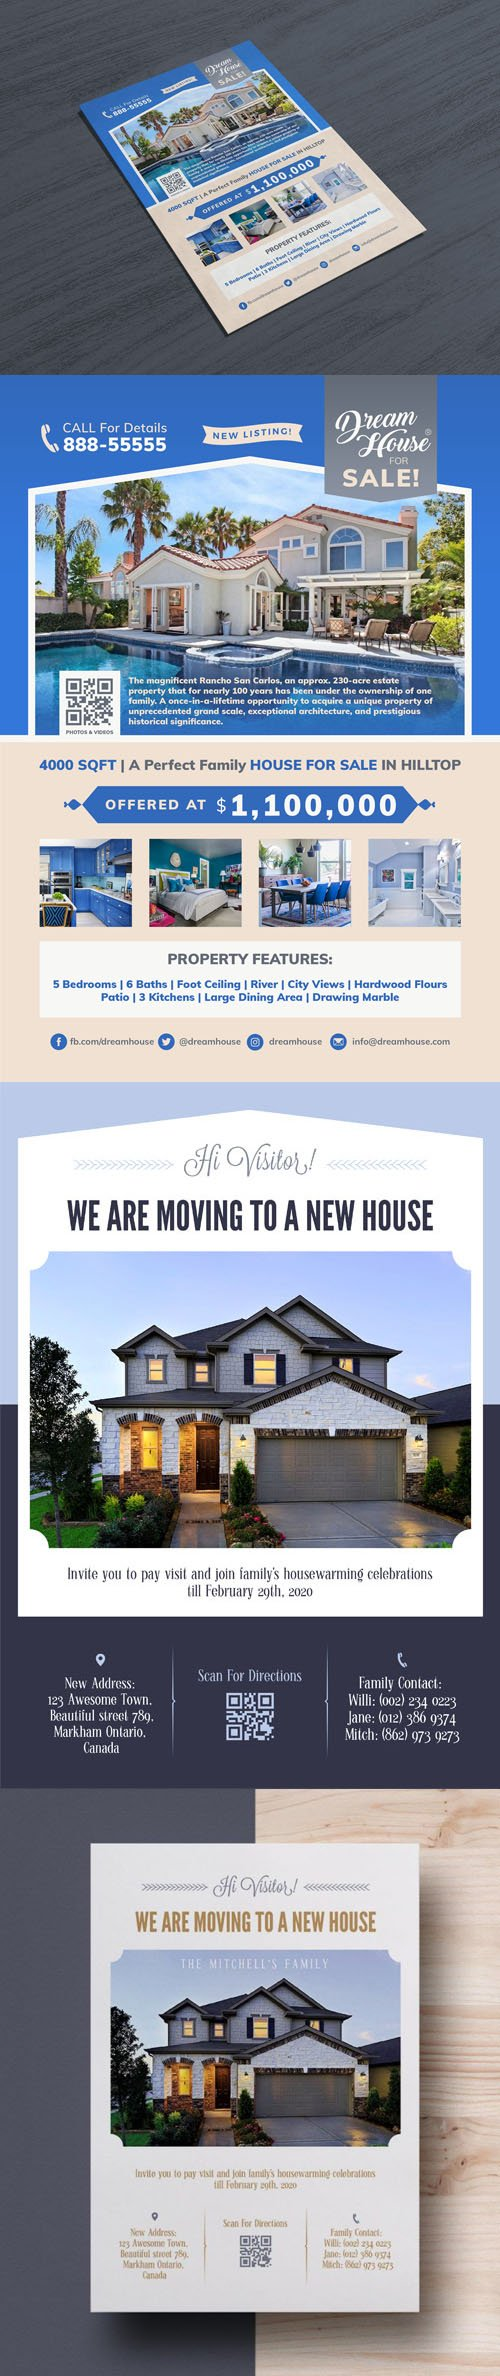 Real Estate - House for Sale & Moving Announcement Flyers Templates